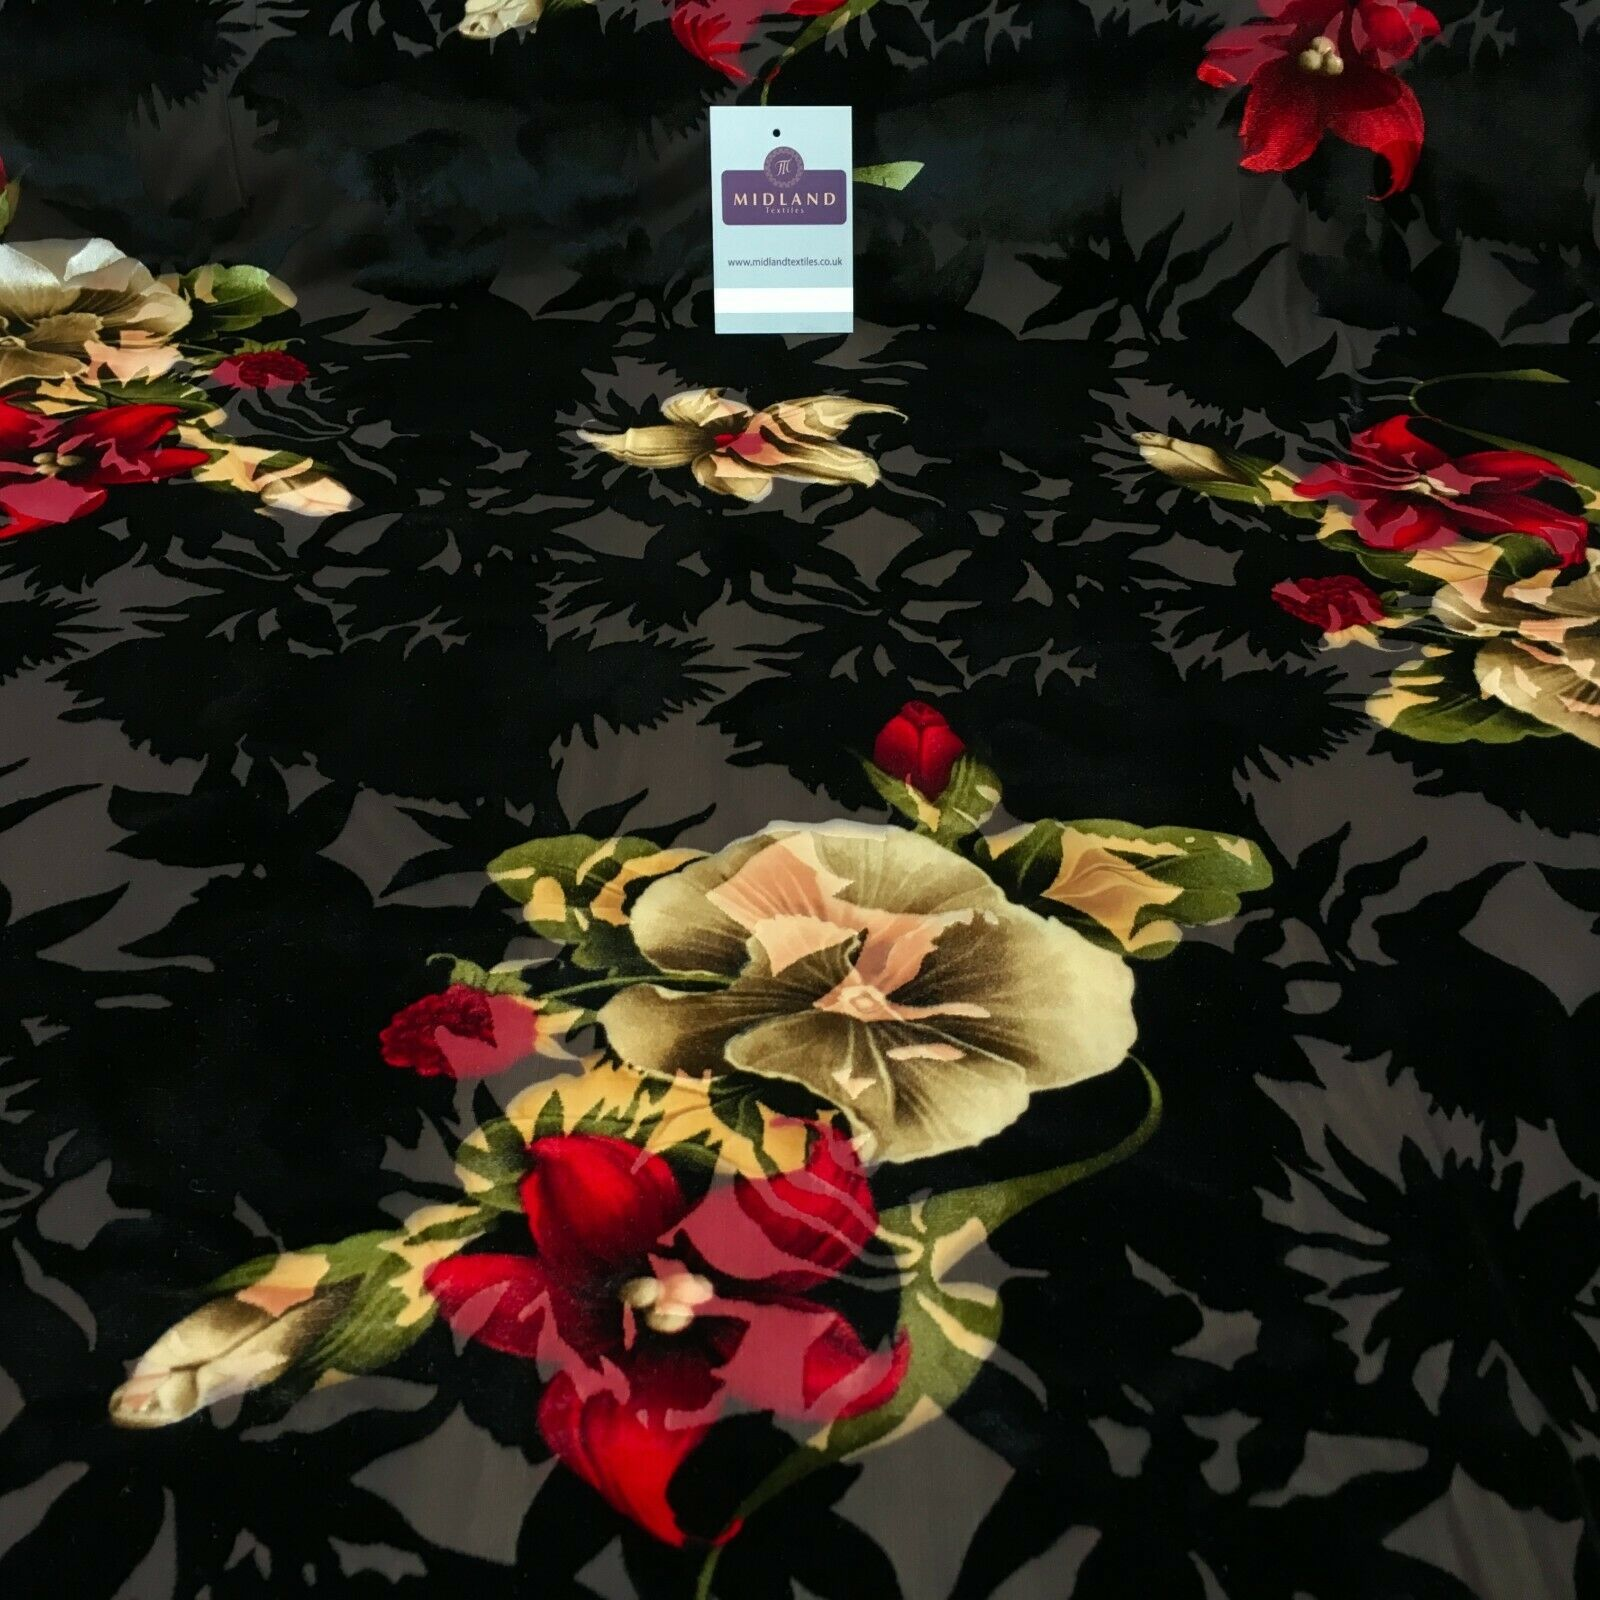 Brown Black Burnout Vintage Floral velvet dress Fabric 147 cm wide MA1094-2